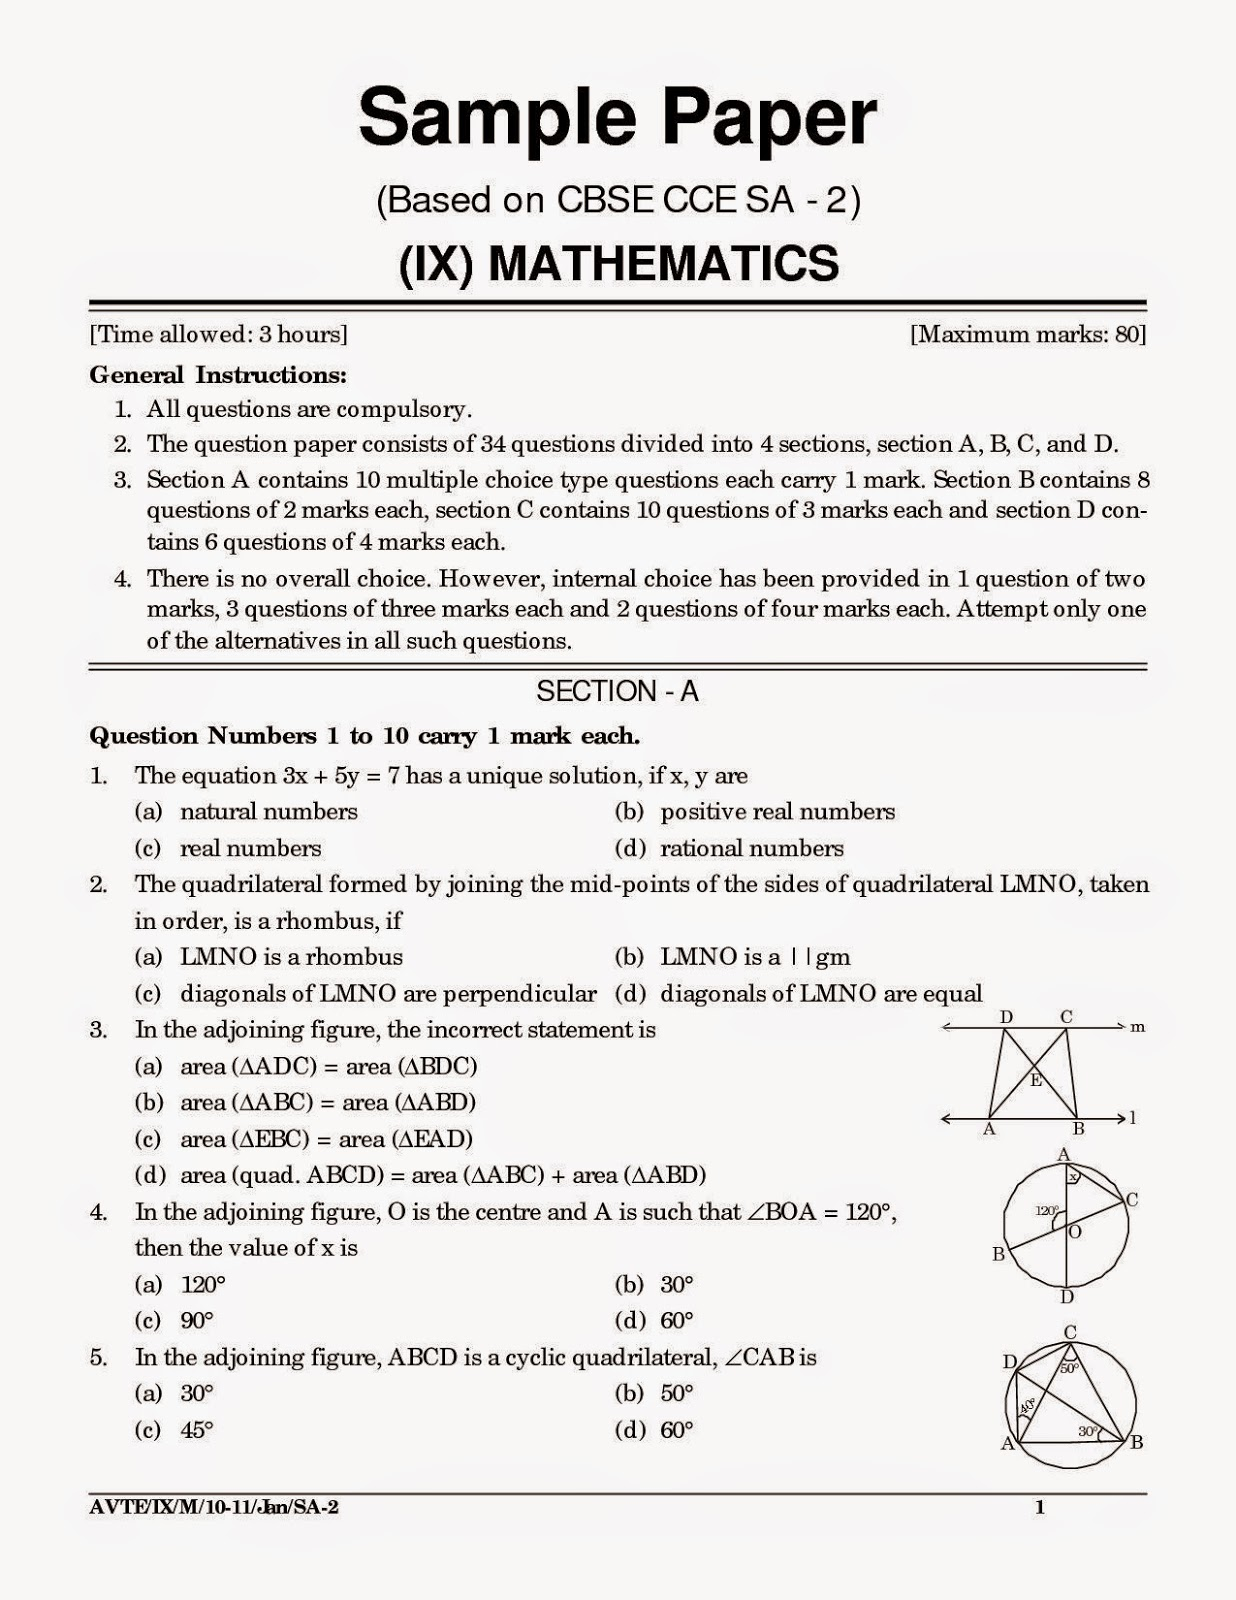 019 Sample Argumentative Essay Cbse20sample20papers20for20class201020mathematics20and20science Jpg Awful Outline Pdf Mla Format Grade 6 Full